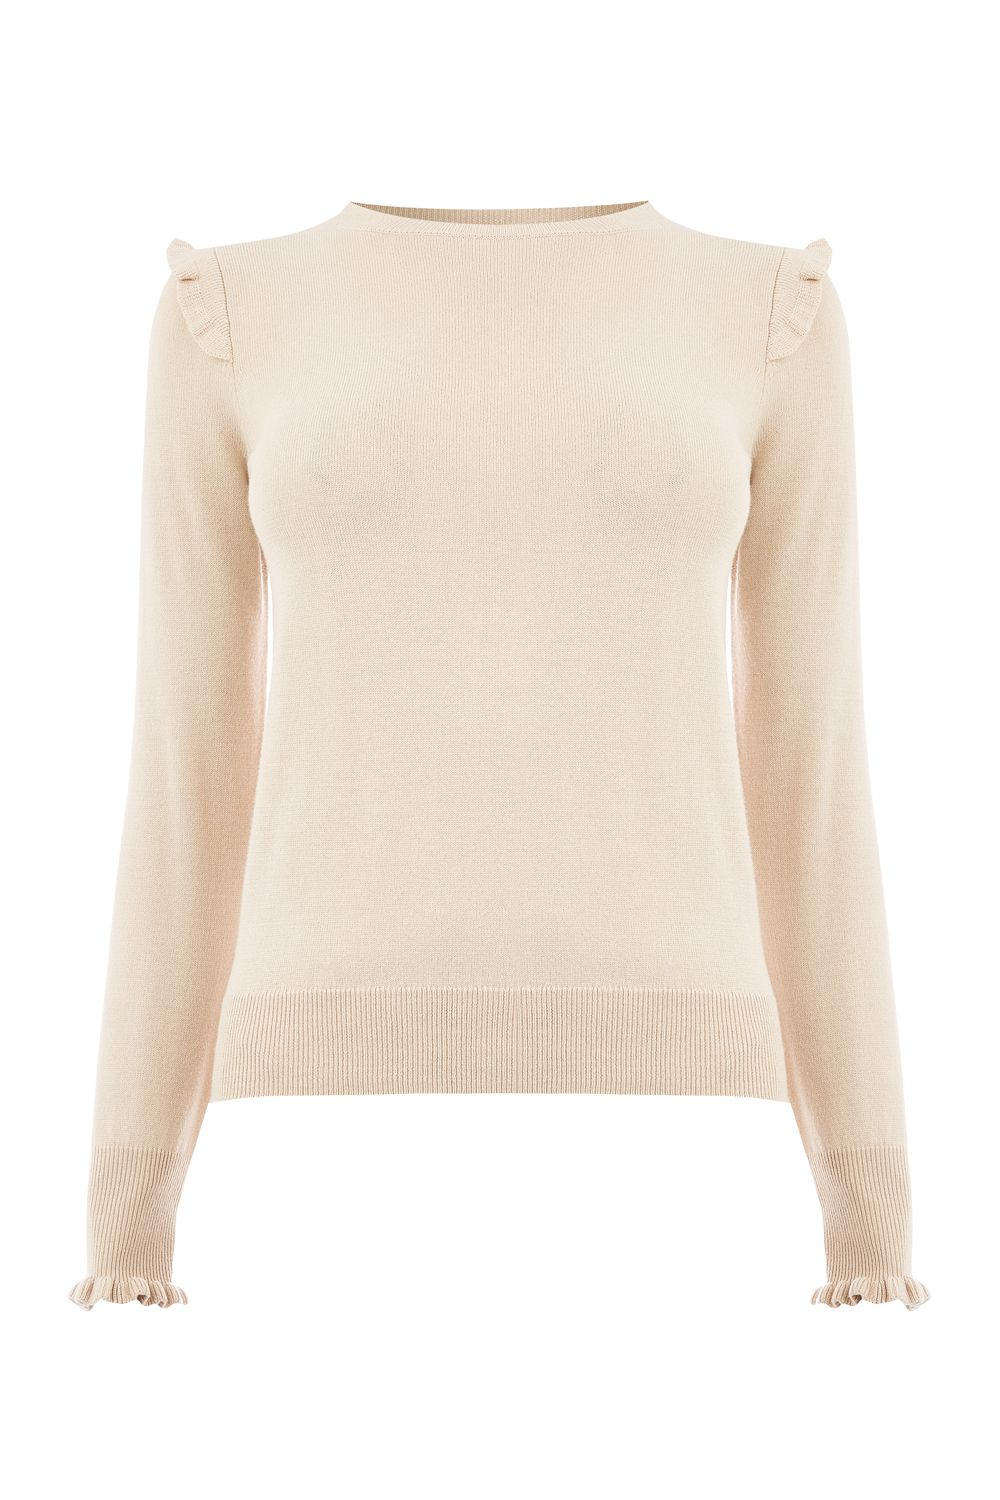 Oasis Frill shoulder and cuff knit, Neutral